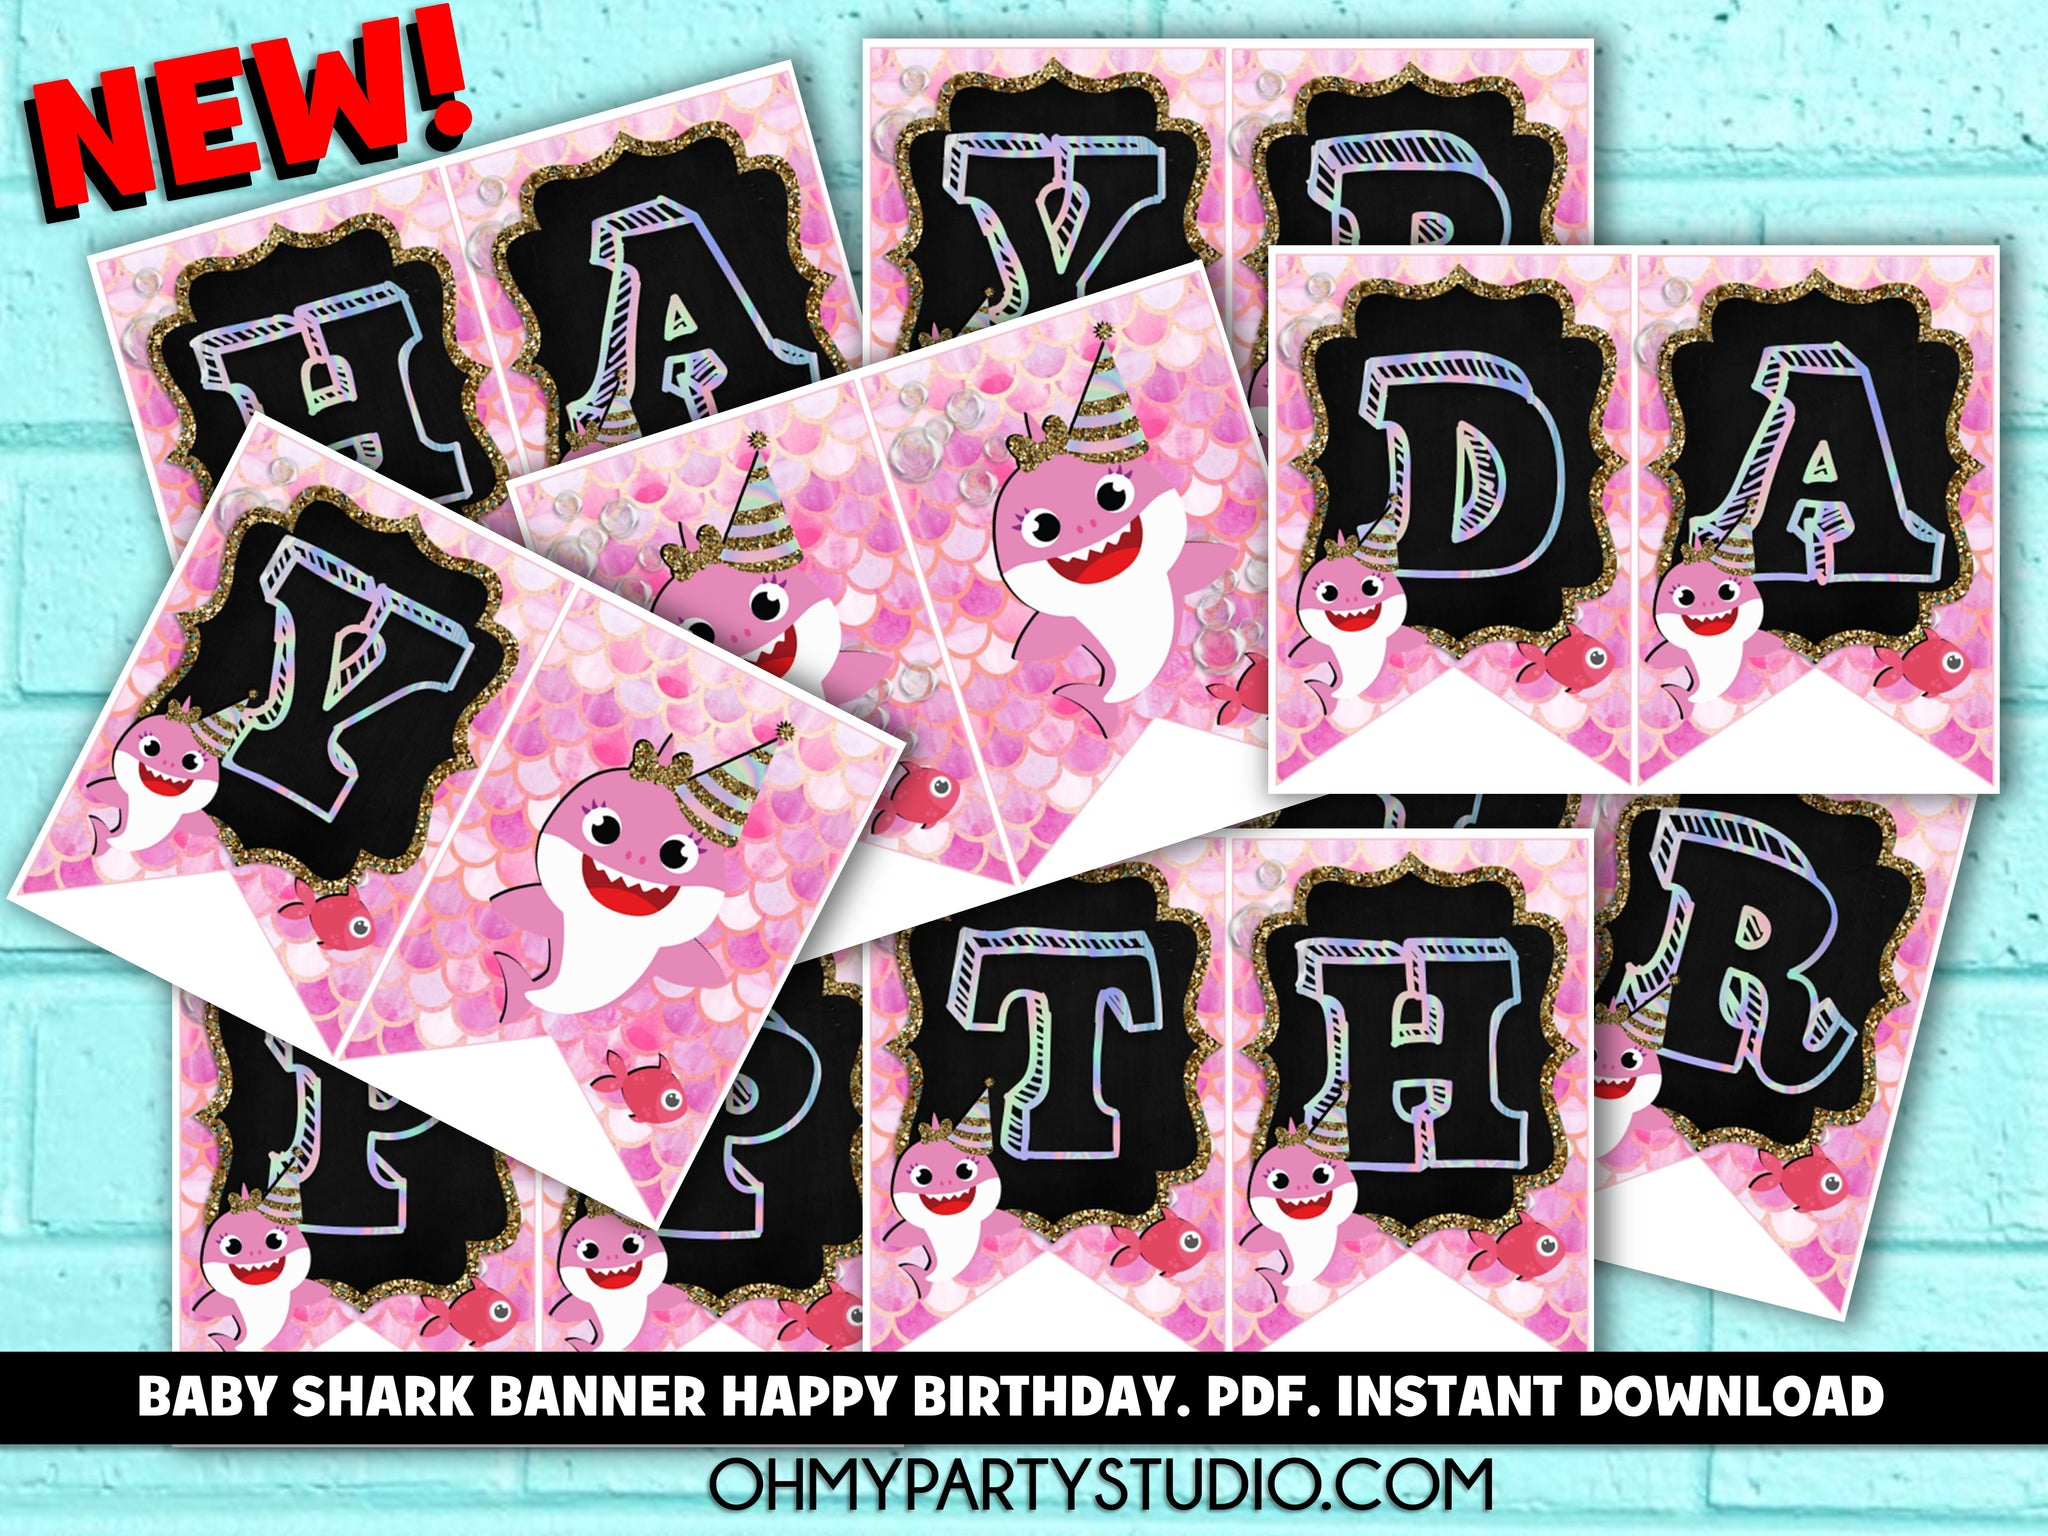 BABY SHARK PARTY DECORATIONS, BABY SHARK PARTY IDEAS, BABY SHARK PARTY THEME, BABY SHARK FOR GIRL, BABY SHARK PARTY FOR GIRL, BABY SHARK BIRTHDAY GIRL, BABY SHARK PARTY PRINTABLES, BABY SHARK INSTANT DOWNLOAD, BABY SHARK PARTY, BABY SHARK BIRTHDAY, BABY SHARK BANNER, BABY SHARK CUPCAKE TOPPERS, BABY SHARK WATER LABELS, BABY SHARK THANK YOU TAGS, BABY SHARK BANNER, BABY SHARK CAKE TOPPER, BABY SHARK CENTERPIECES